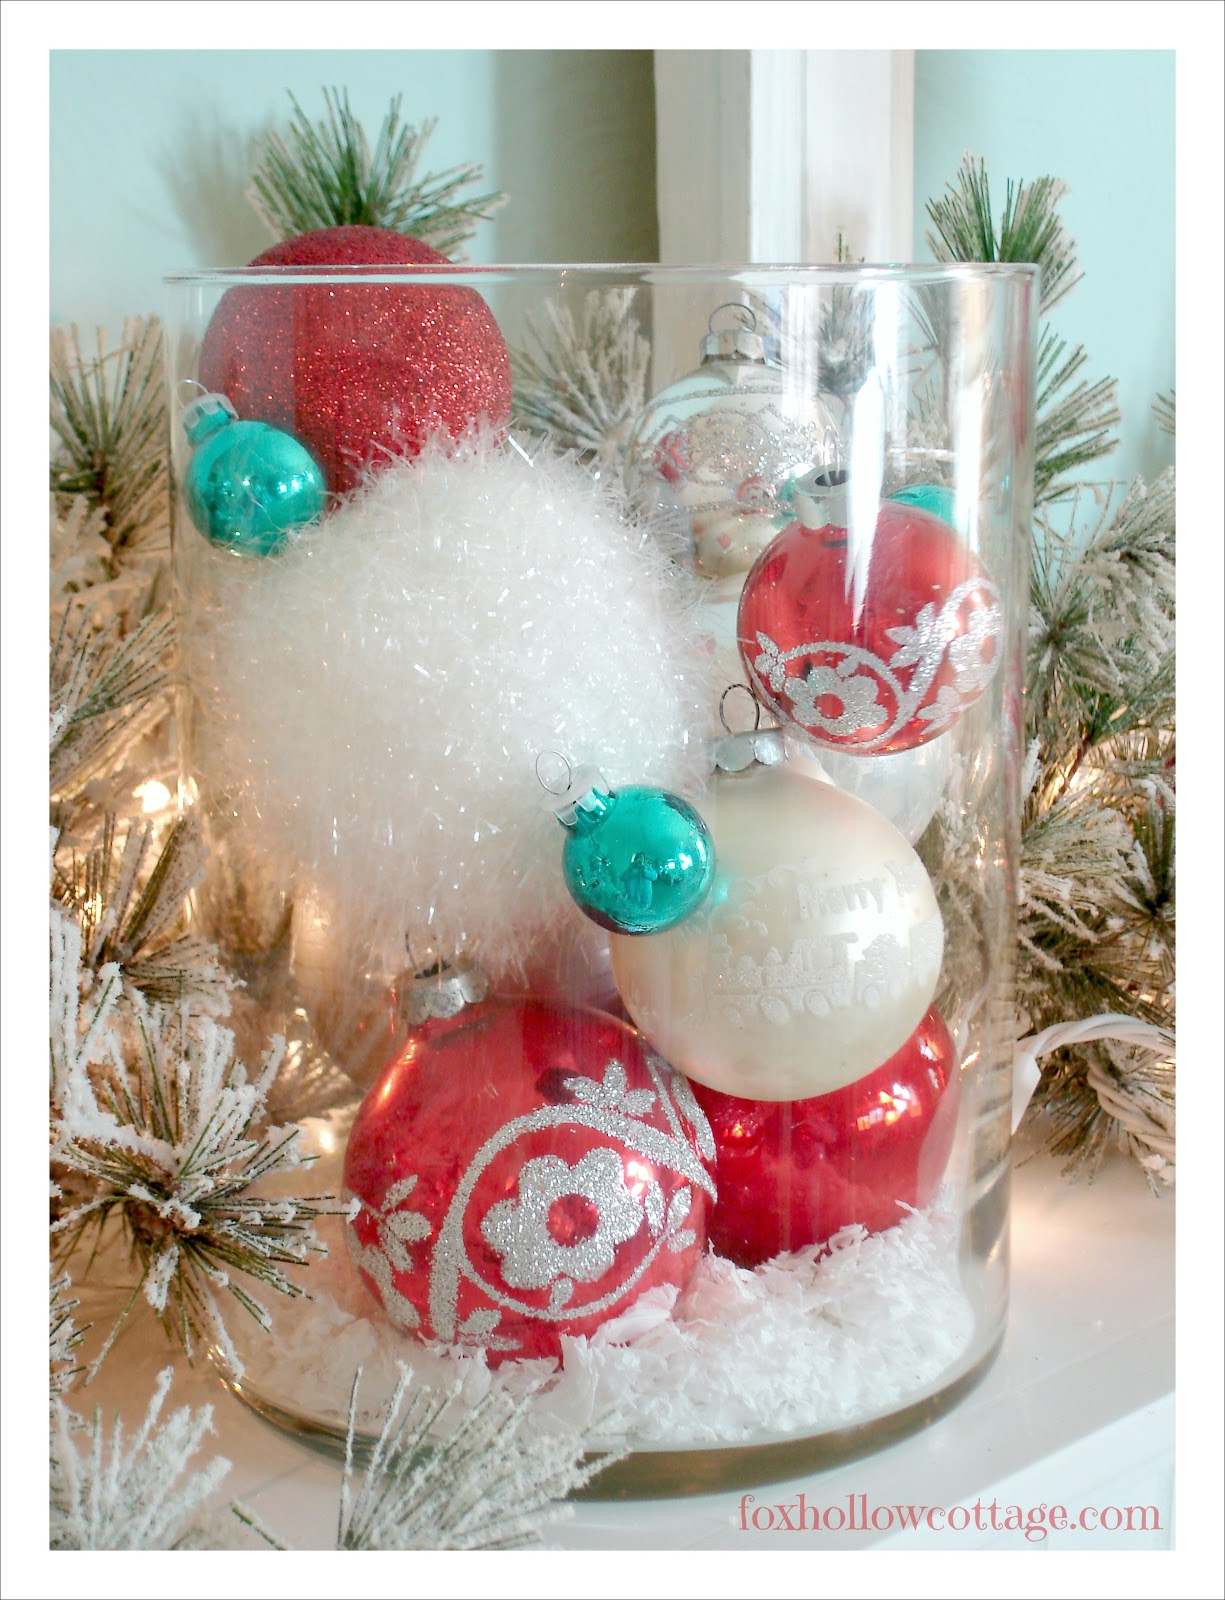 New Christmas ornaments add extra sparkle to your holiday decor, whether you're trimming your very first Christmas tree or refreshing your existing collection of holiday decorations. Christmas Decorating Trends A Christmas tree is a blank canvas that you can turn into a work of art.